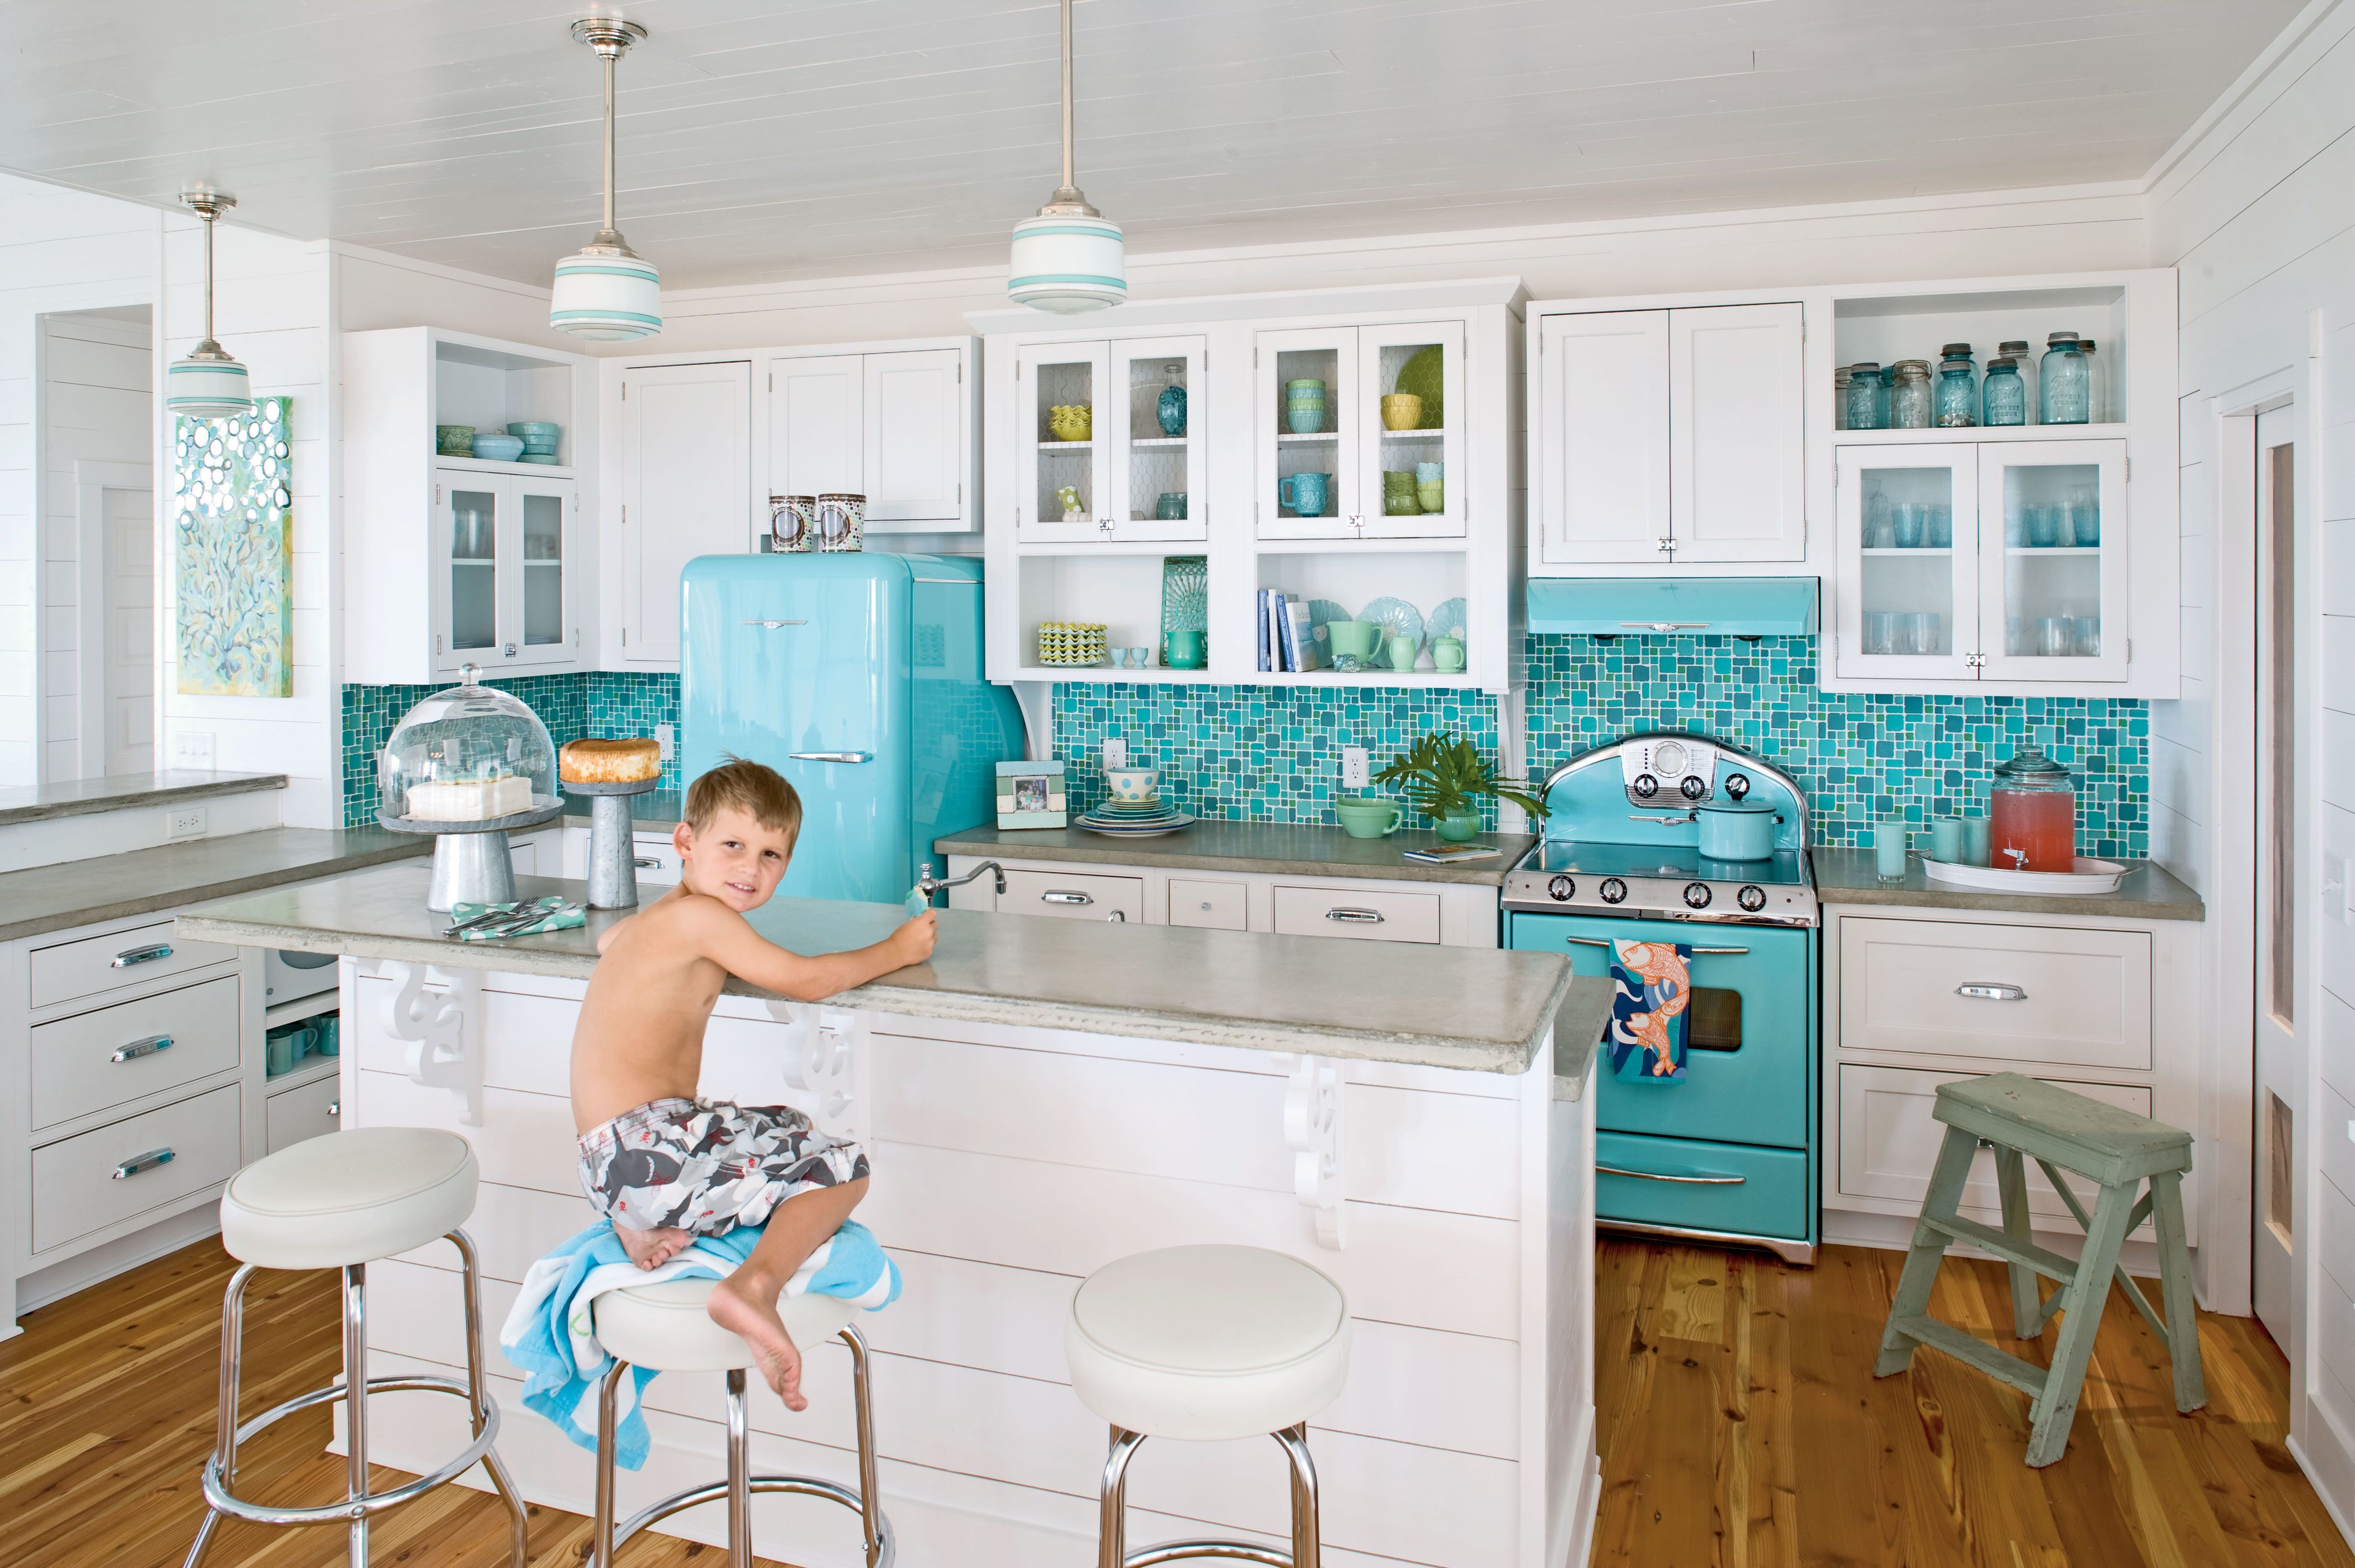 Retro Beach Kitchen | Cottages | Pinterest | Beach kitchens ...